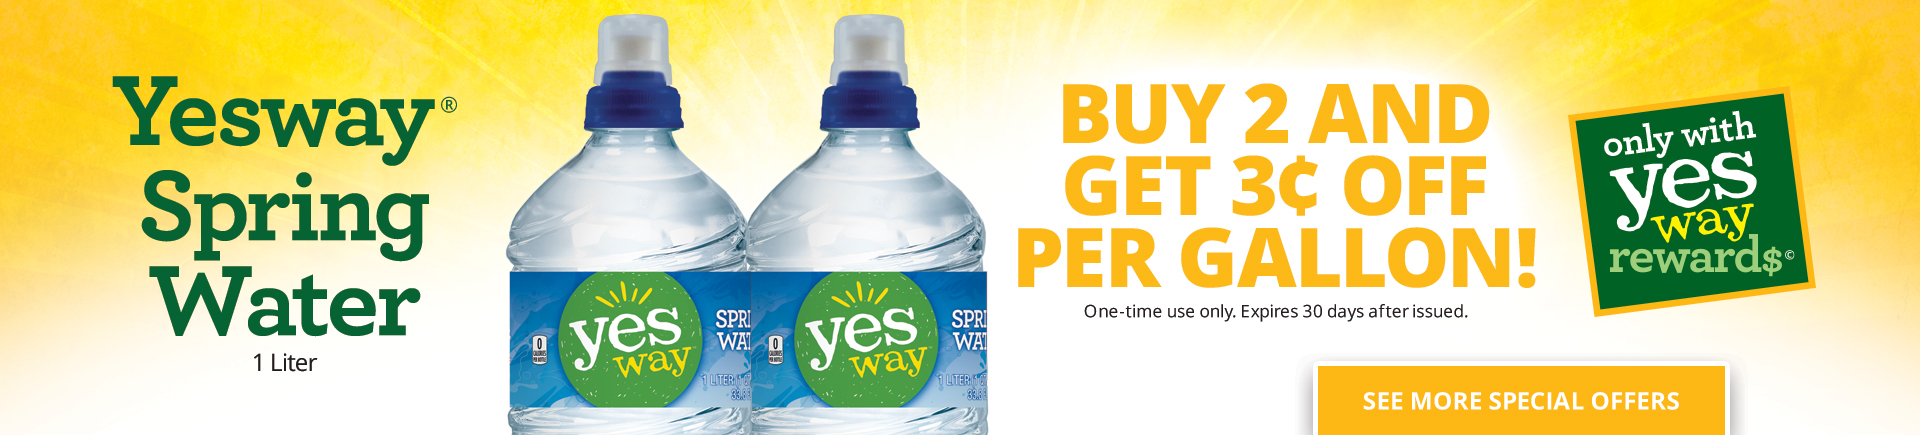 Yesway Spring Water 1 liter - Buy 2 and get $0.03 OFF per gallon